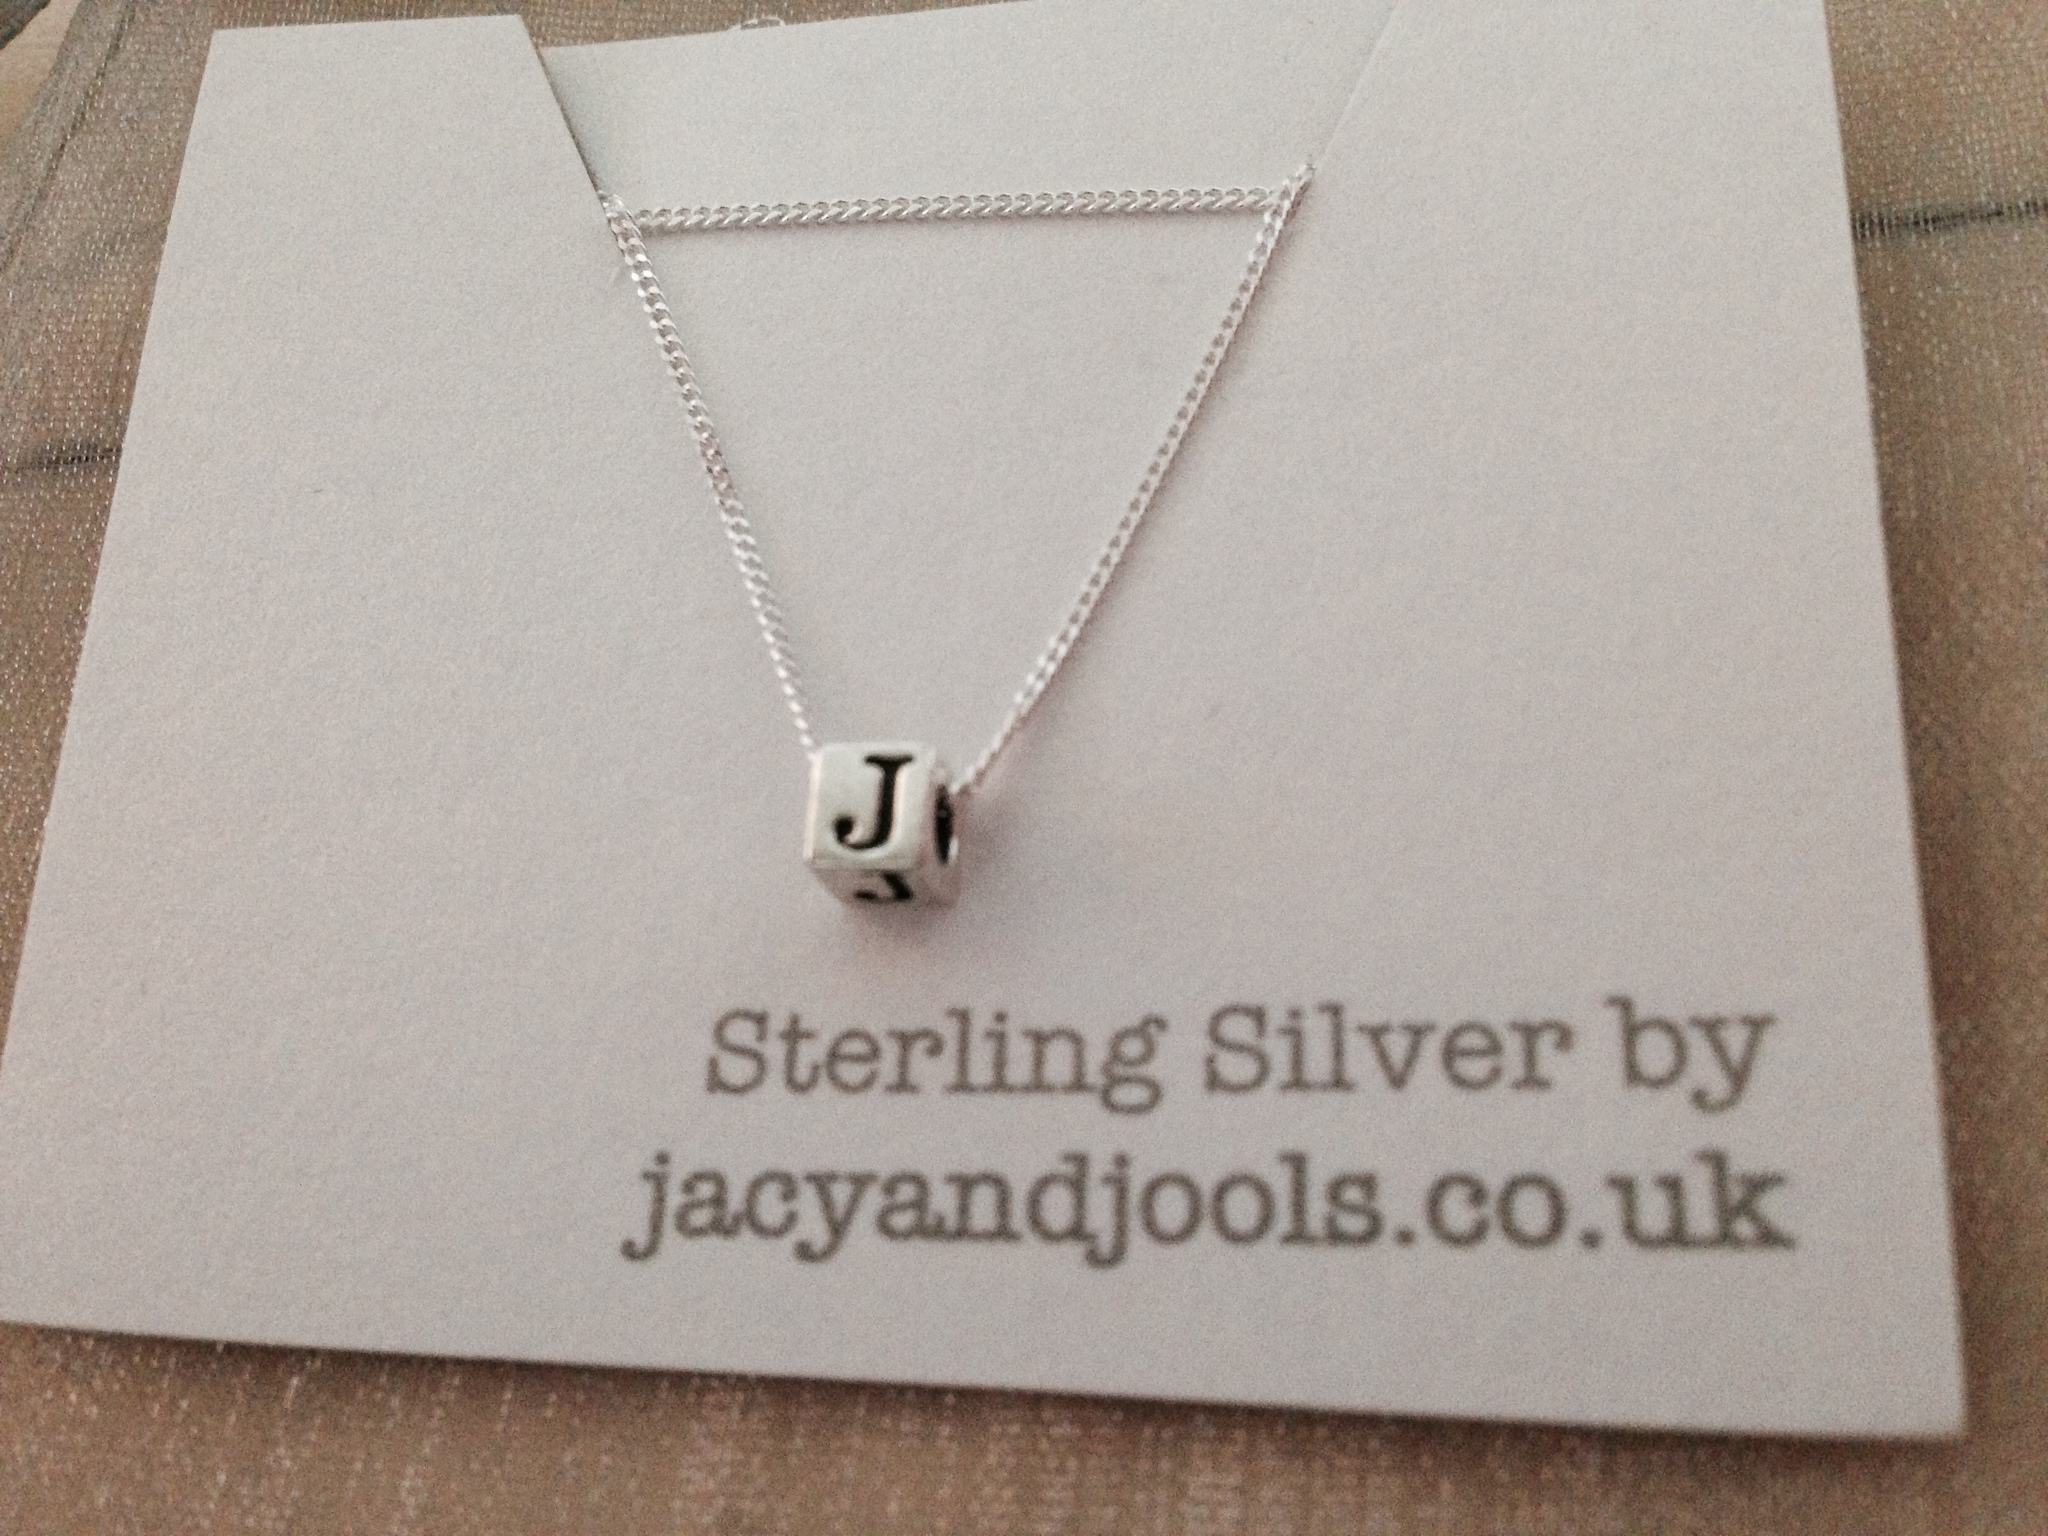 * jacy & jools necklace review